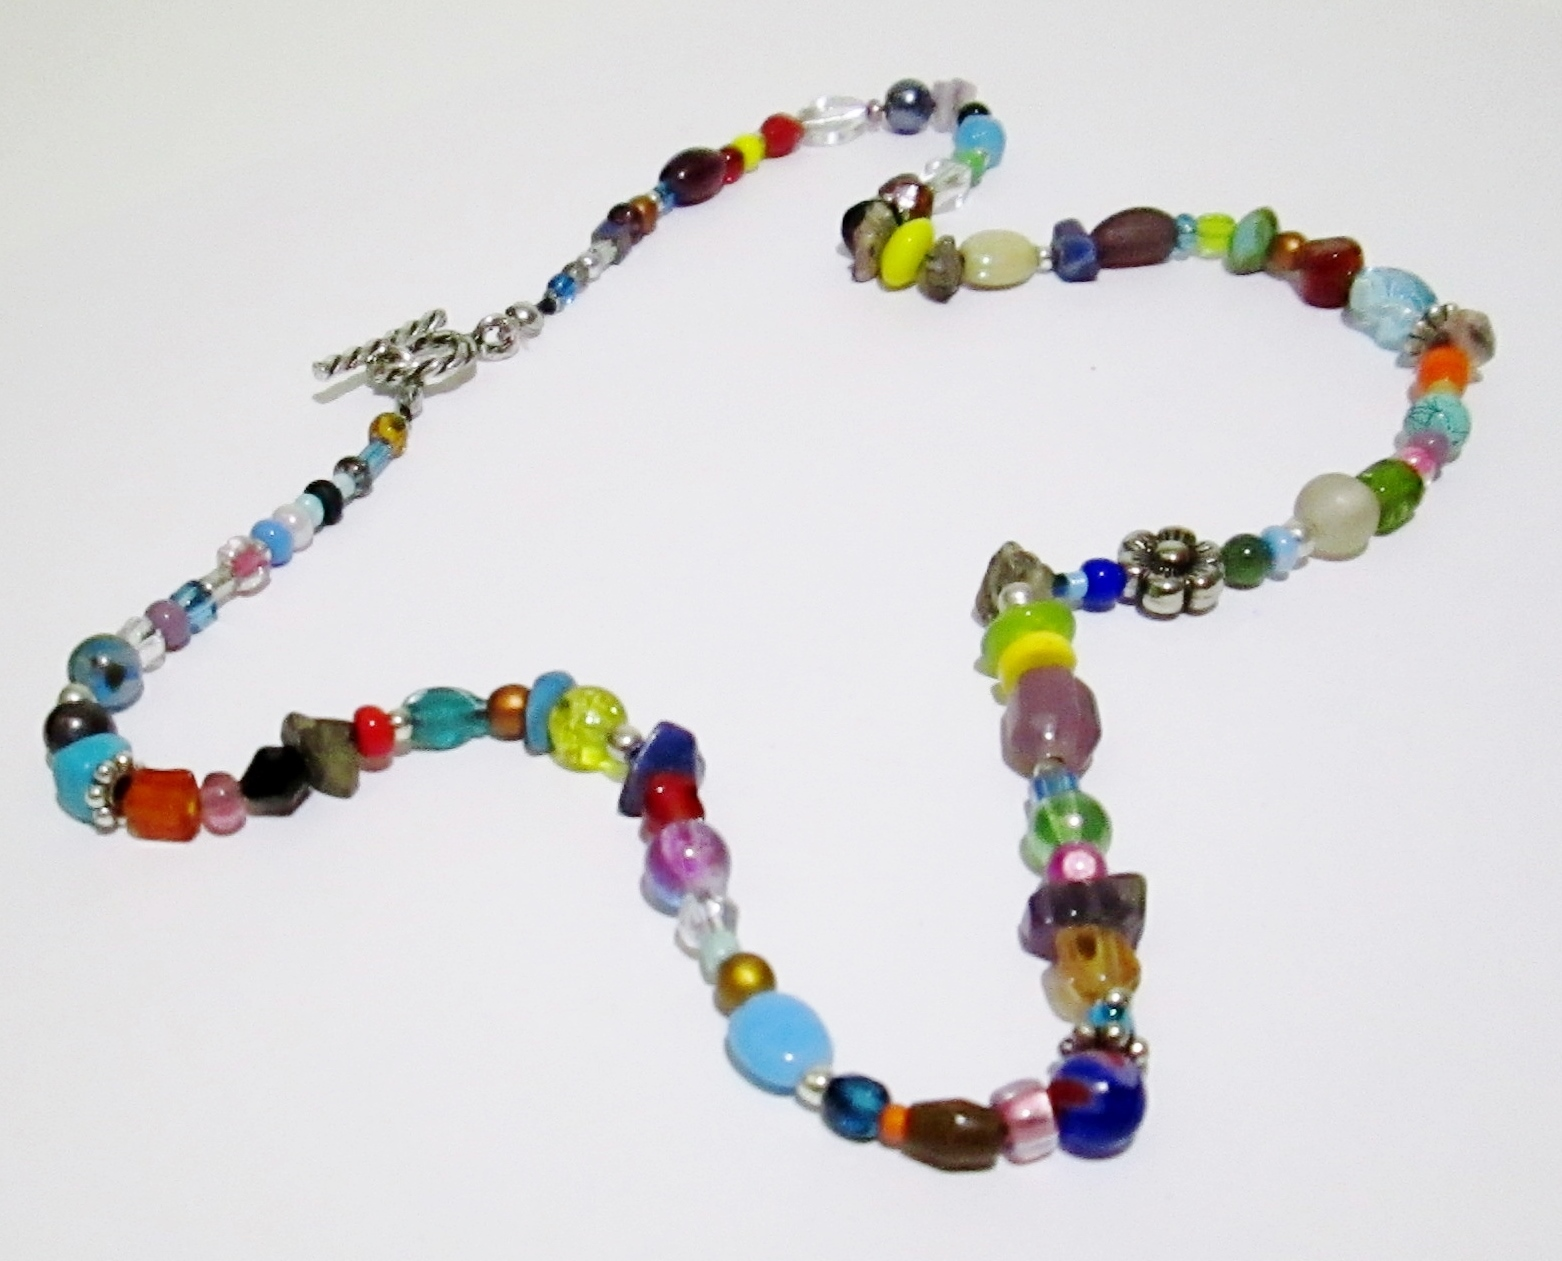 Colorful Necklace for Spring